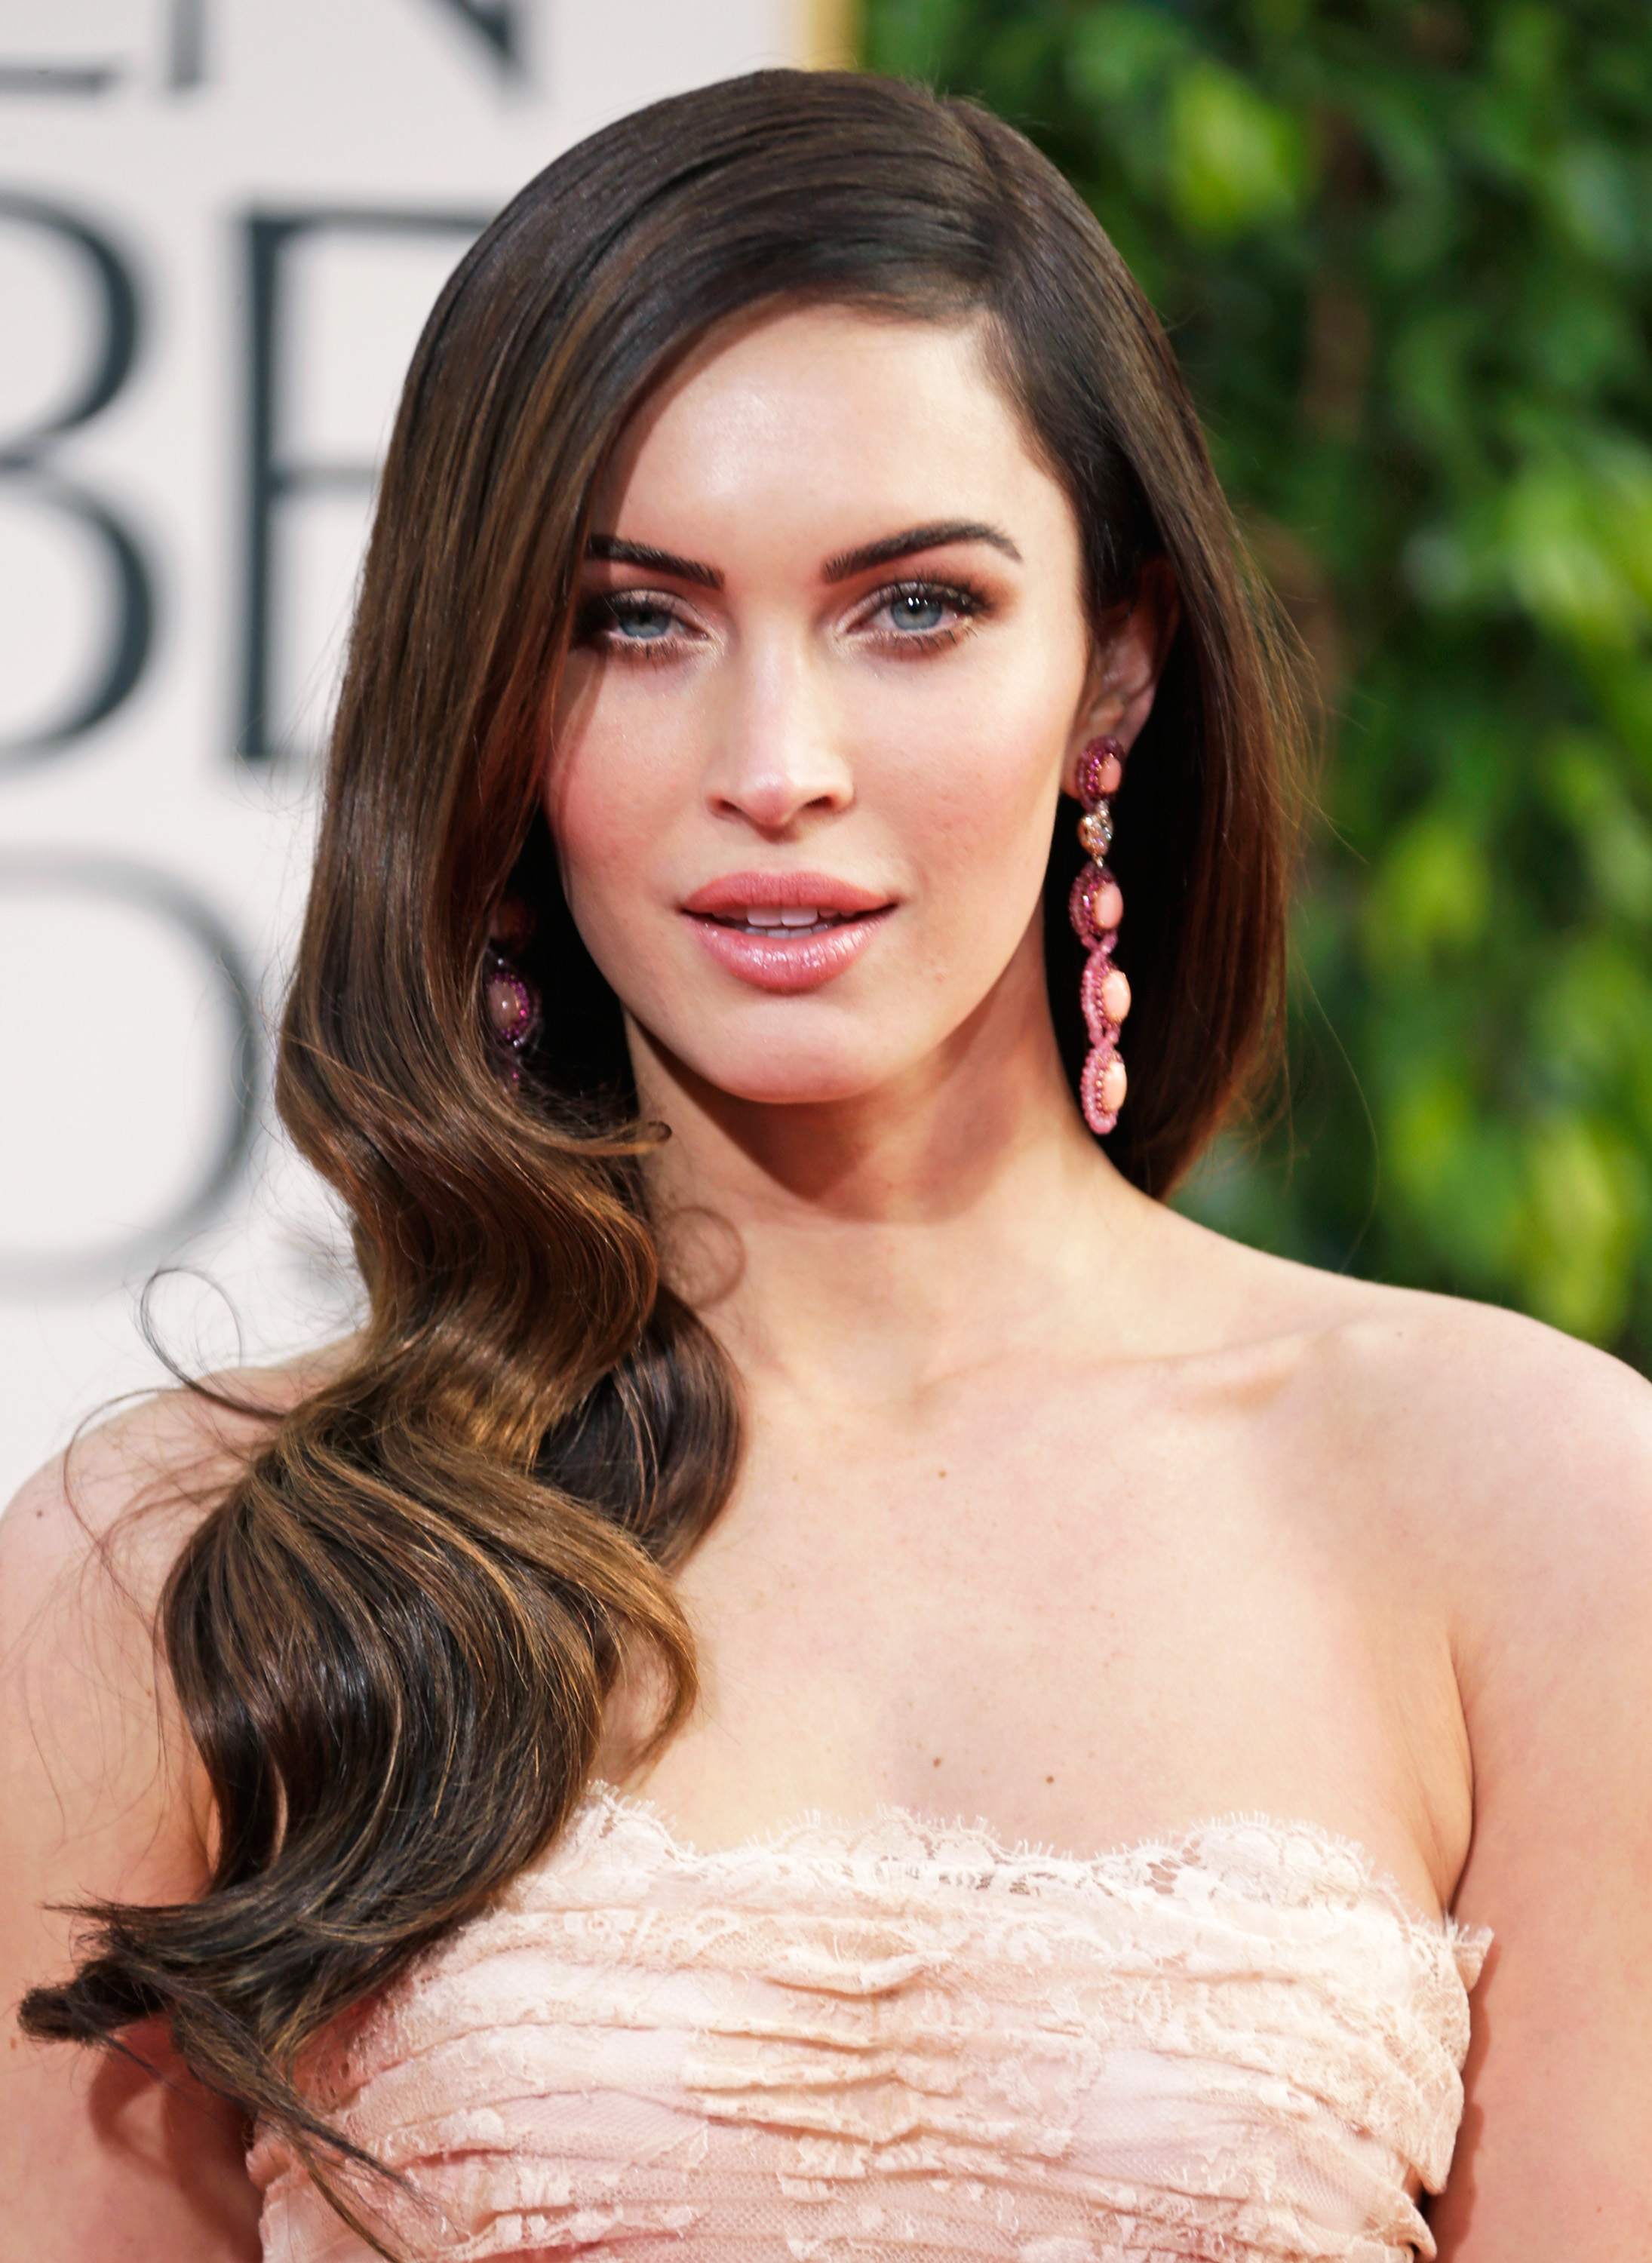 Actress Megan Fox arrives at the 70th Annual Golden Globe Awards held at The Beverly Hilton Hotel on January 13, 2013 in Beverly Hills, California.  (Jeff Vespa--WireImage)